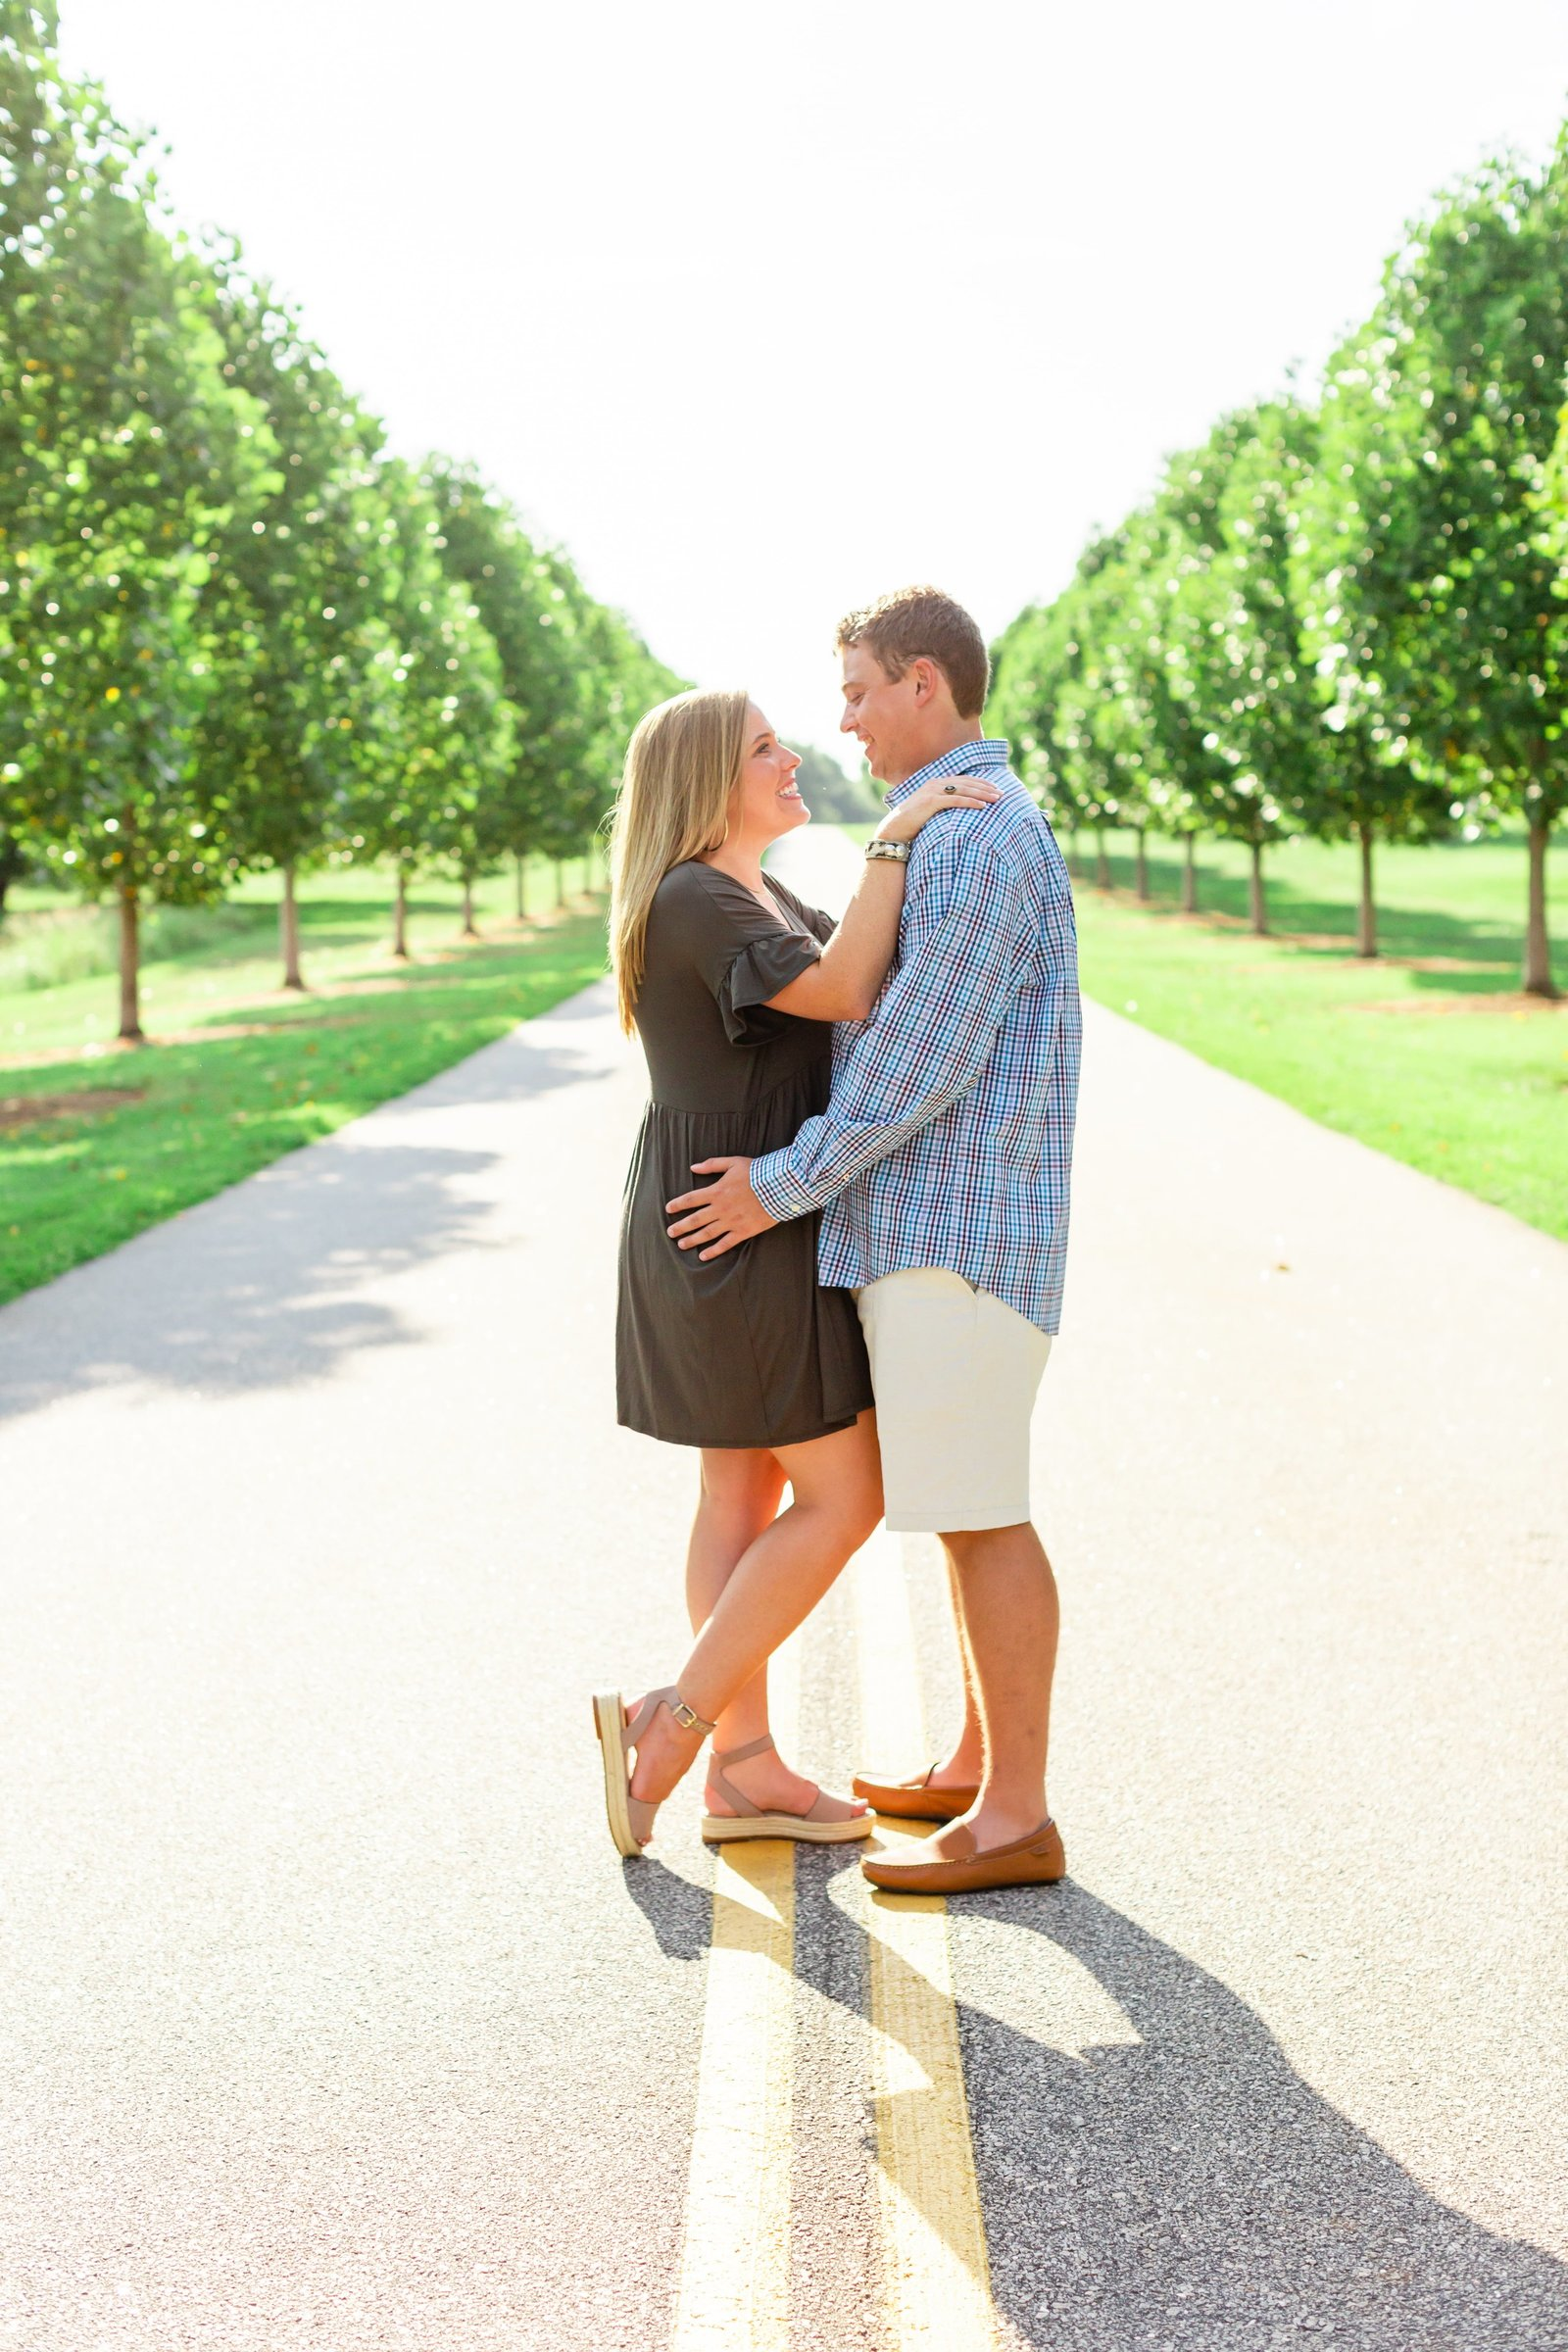 H & H Greenville engagement session by Charleston wedding photographer-20-min